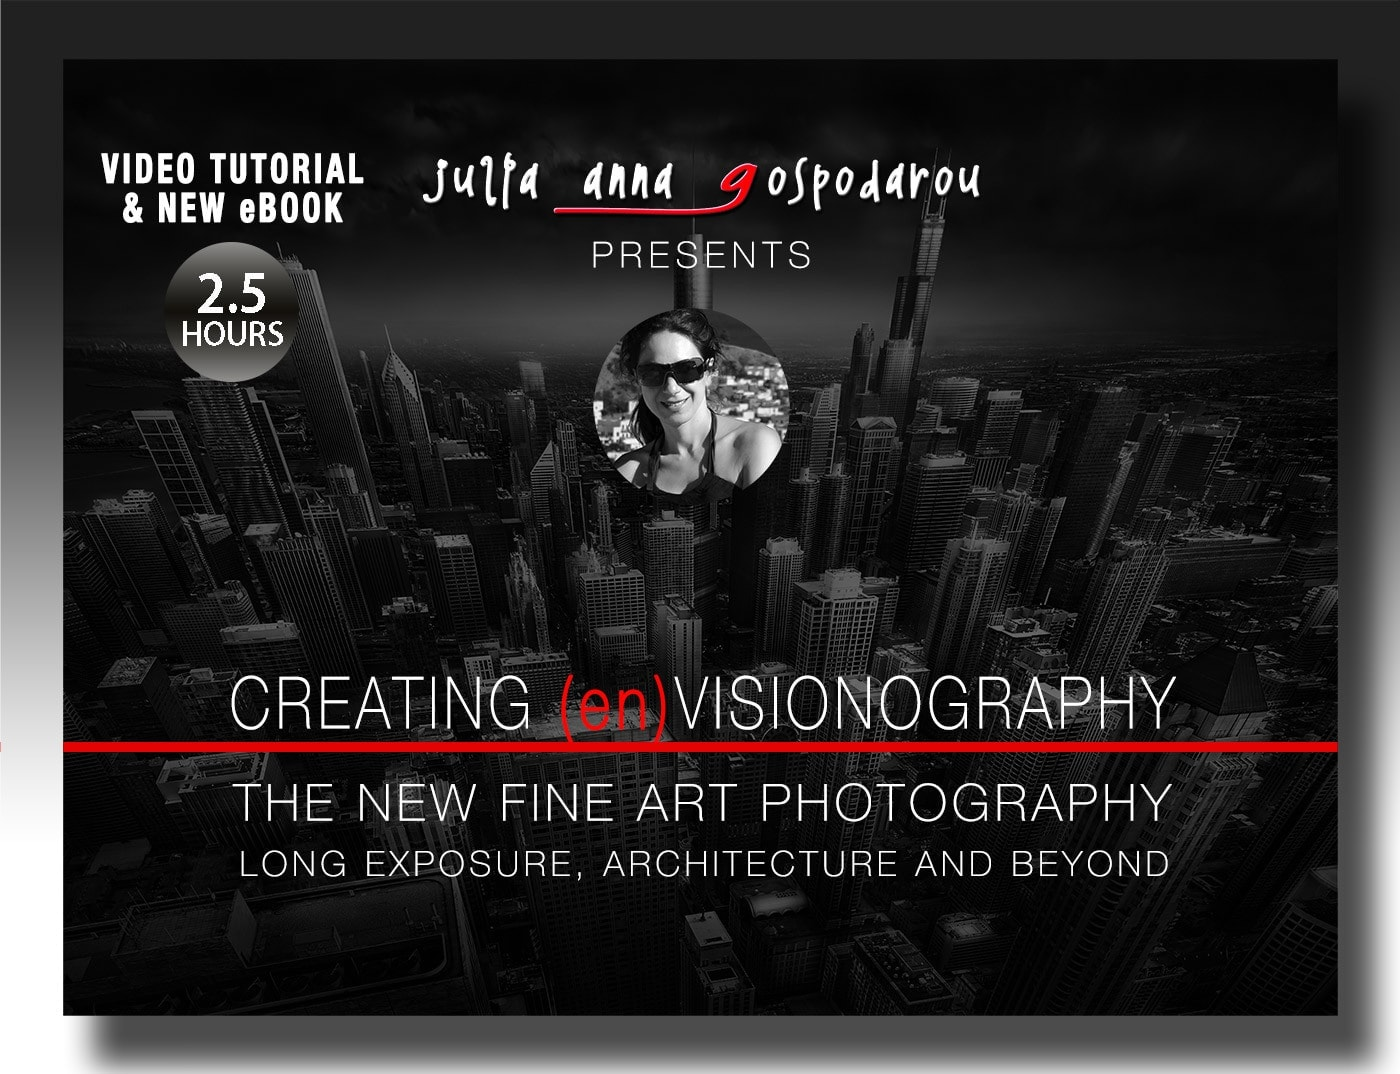 VIDEO TUTORIAL AND NEW EBOOK - CREATING (EN)VISIONOGRAPHY LONG EXPOSURE, FINE ART, ARCHITECTURE PHOTOGRAPHY